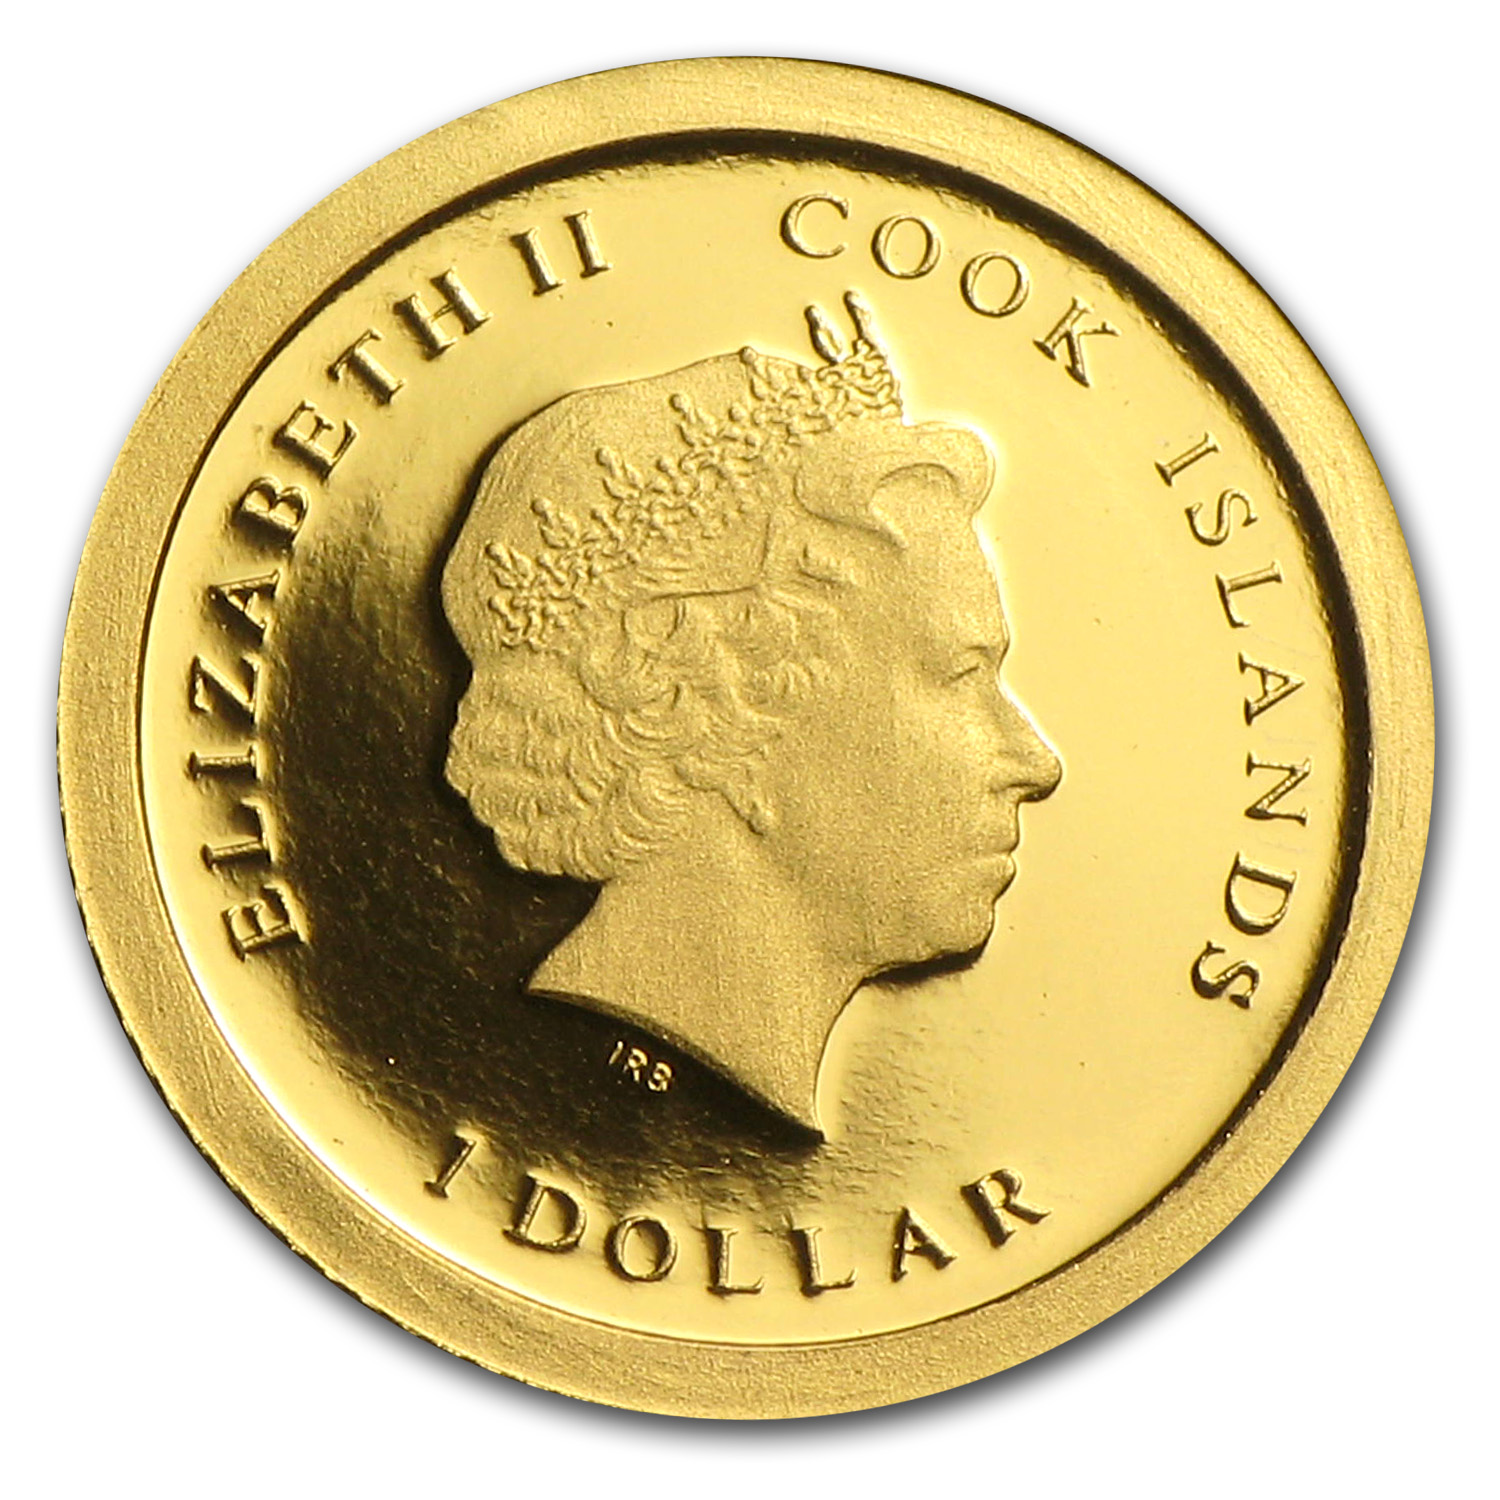 Cook Islands 2013 Proof Gold $1 SS Republic 1853-1865